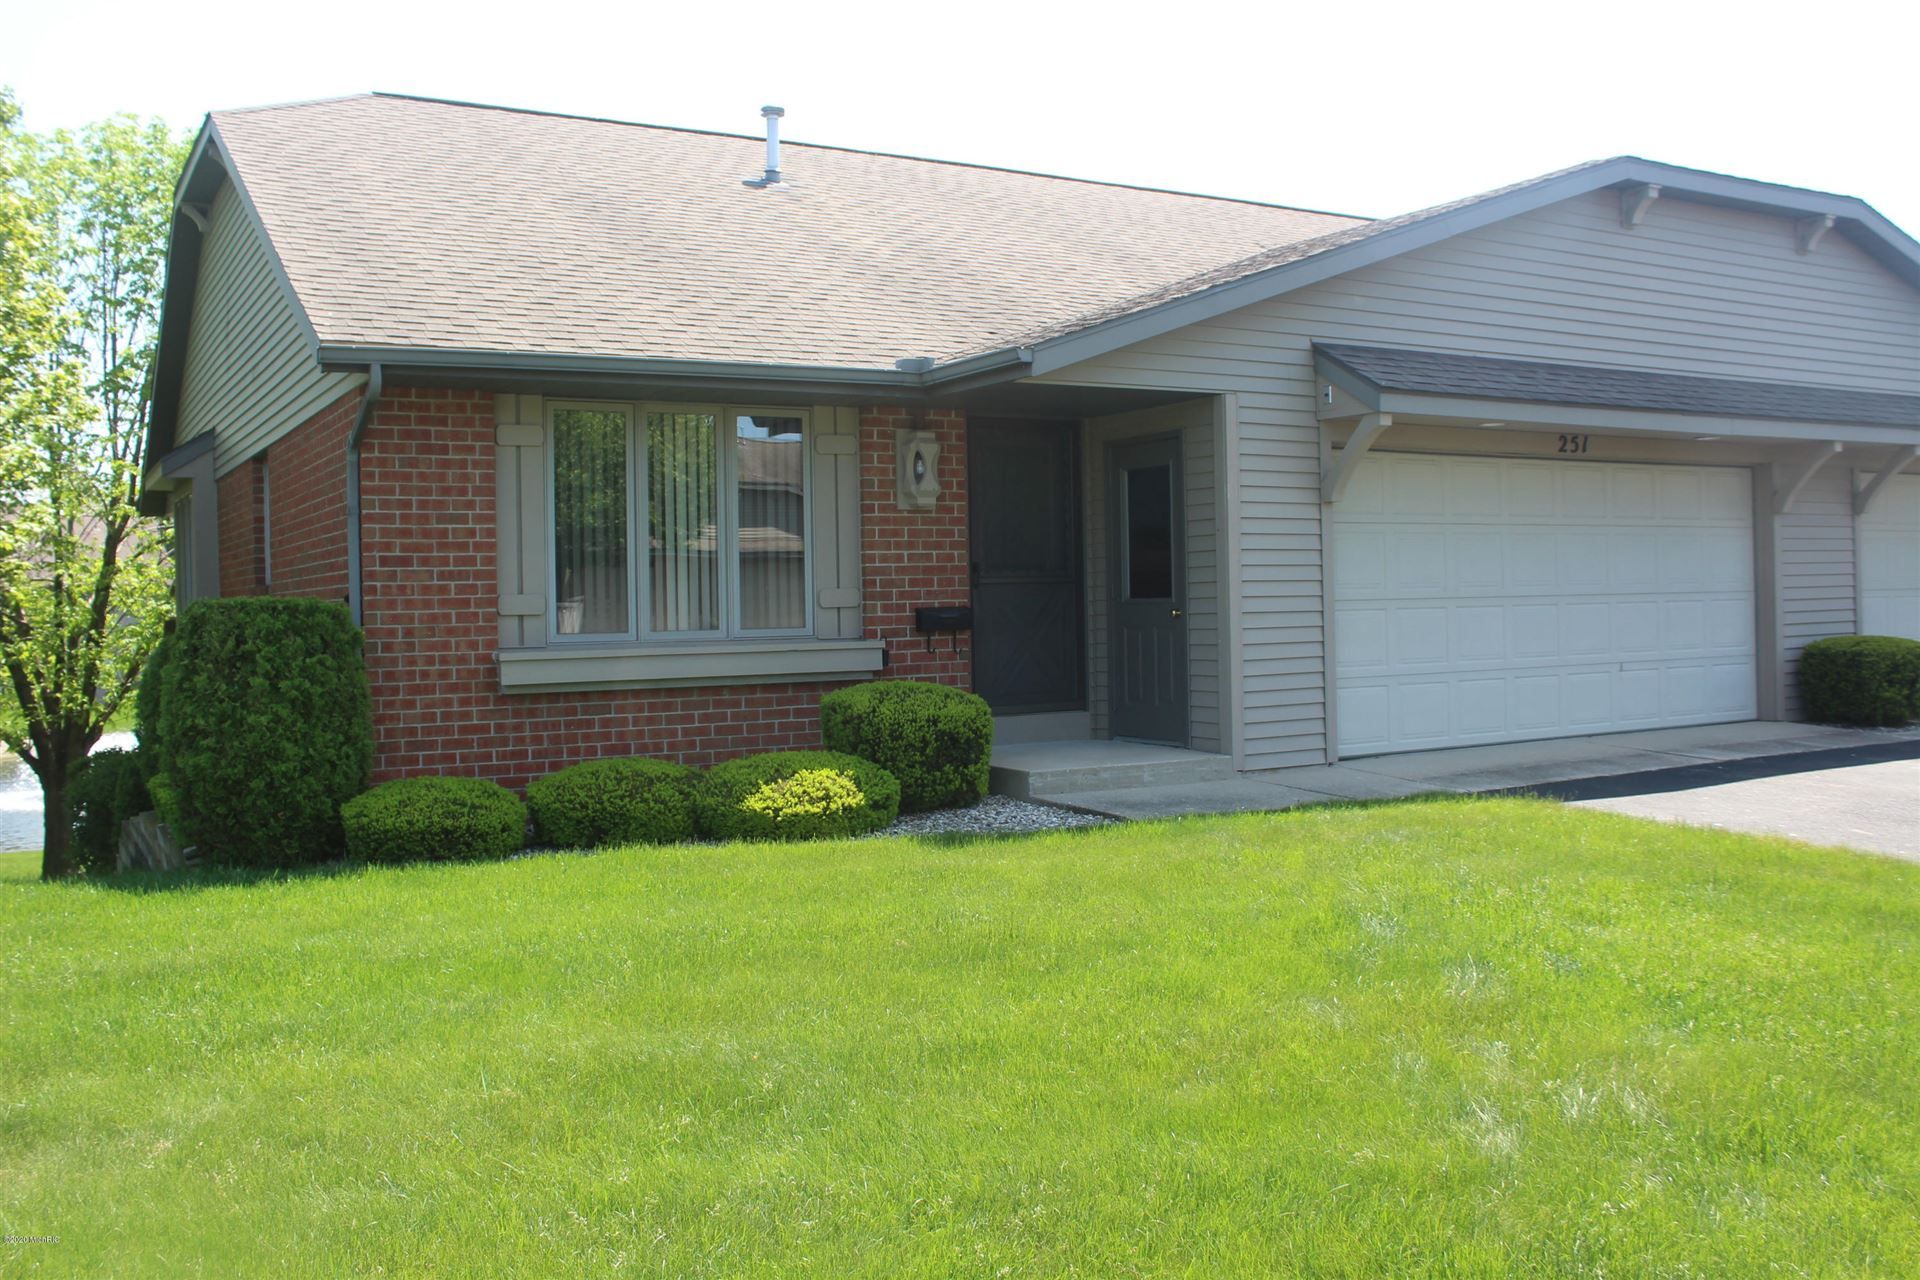 251 Interlaken Court, Zeeland, MI 49464 - #: 20018441